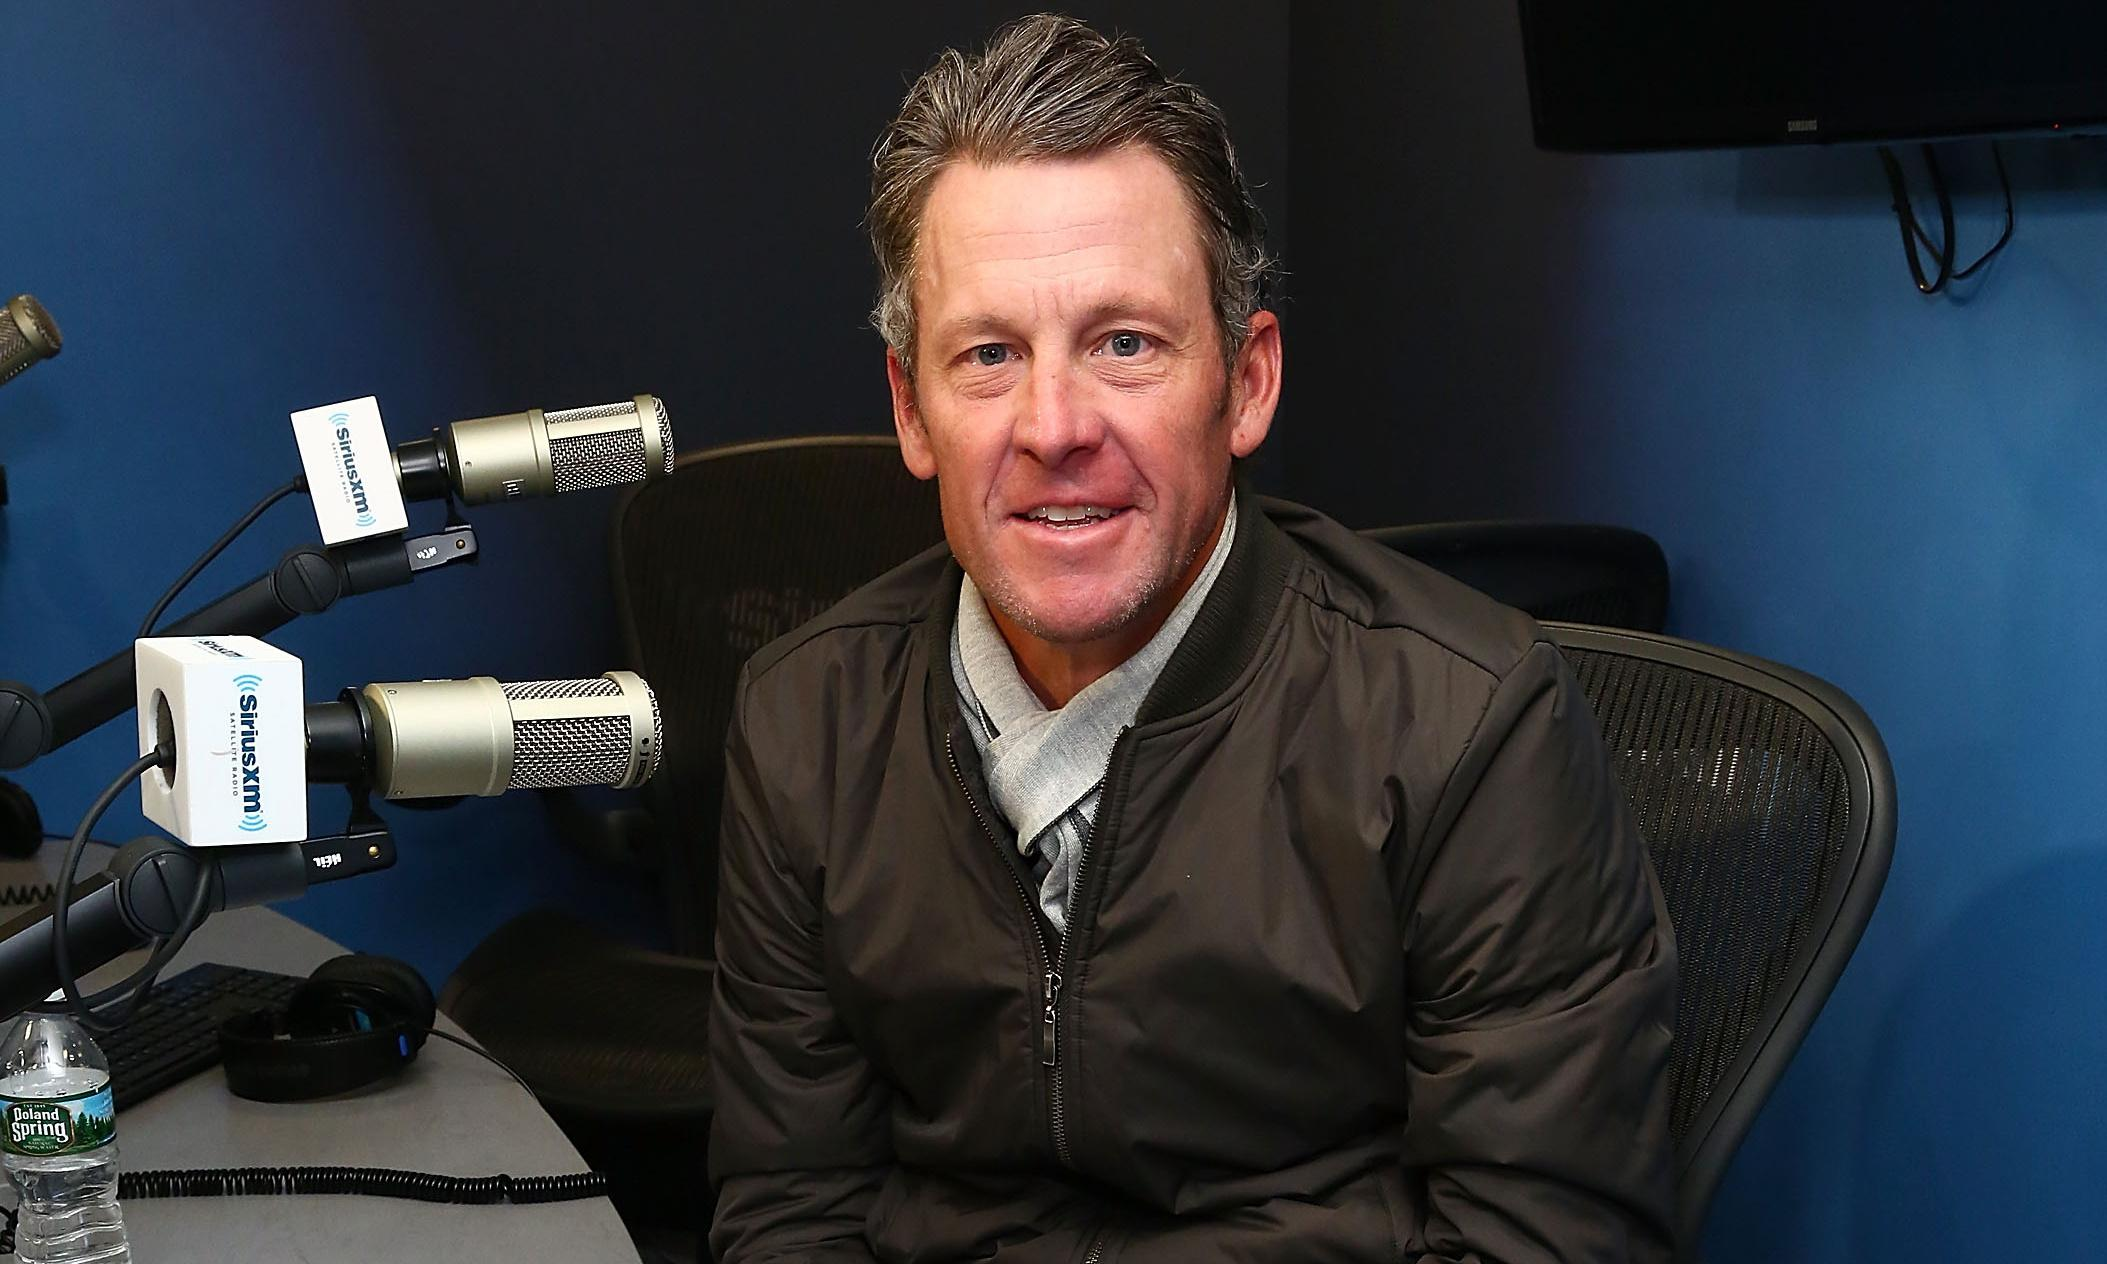 Forget Tiger, Lance Armstrong may pull off biggest comeback of sport's disgraced